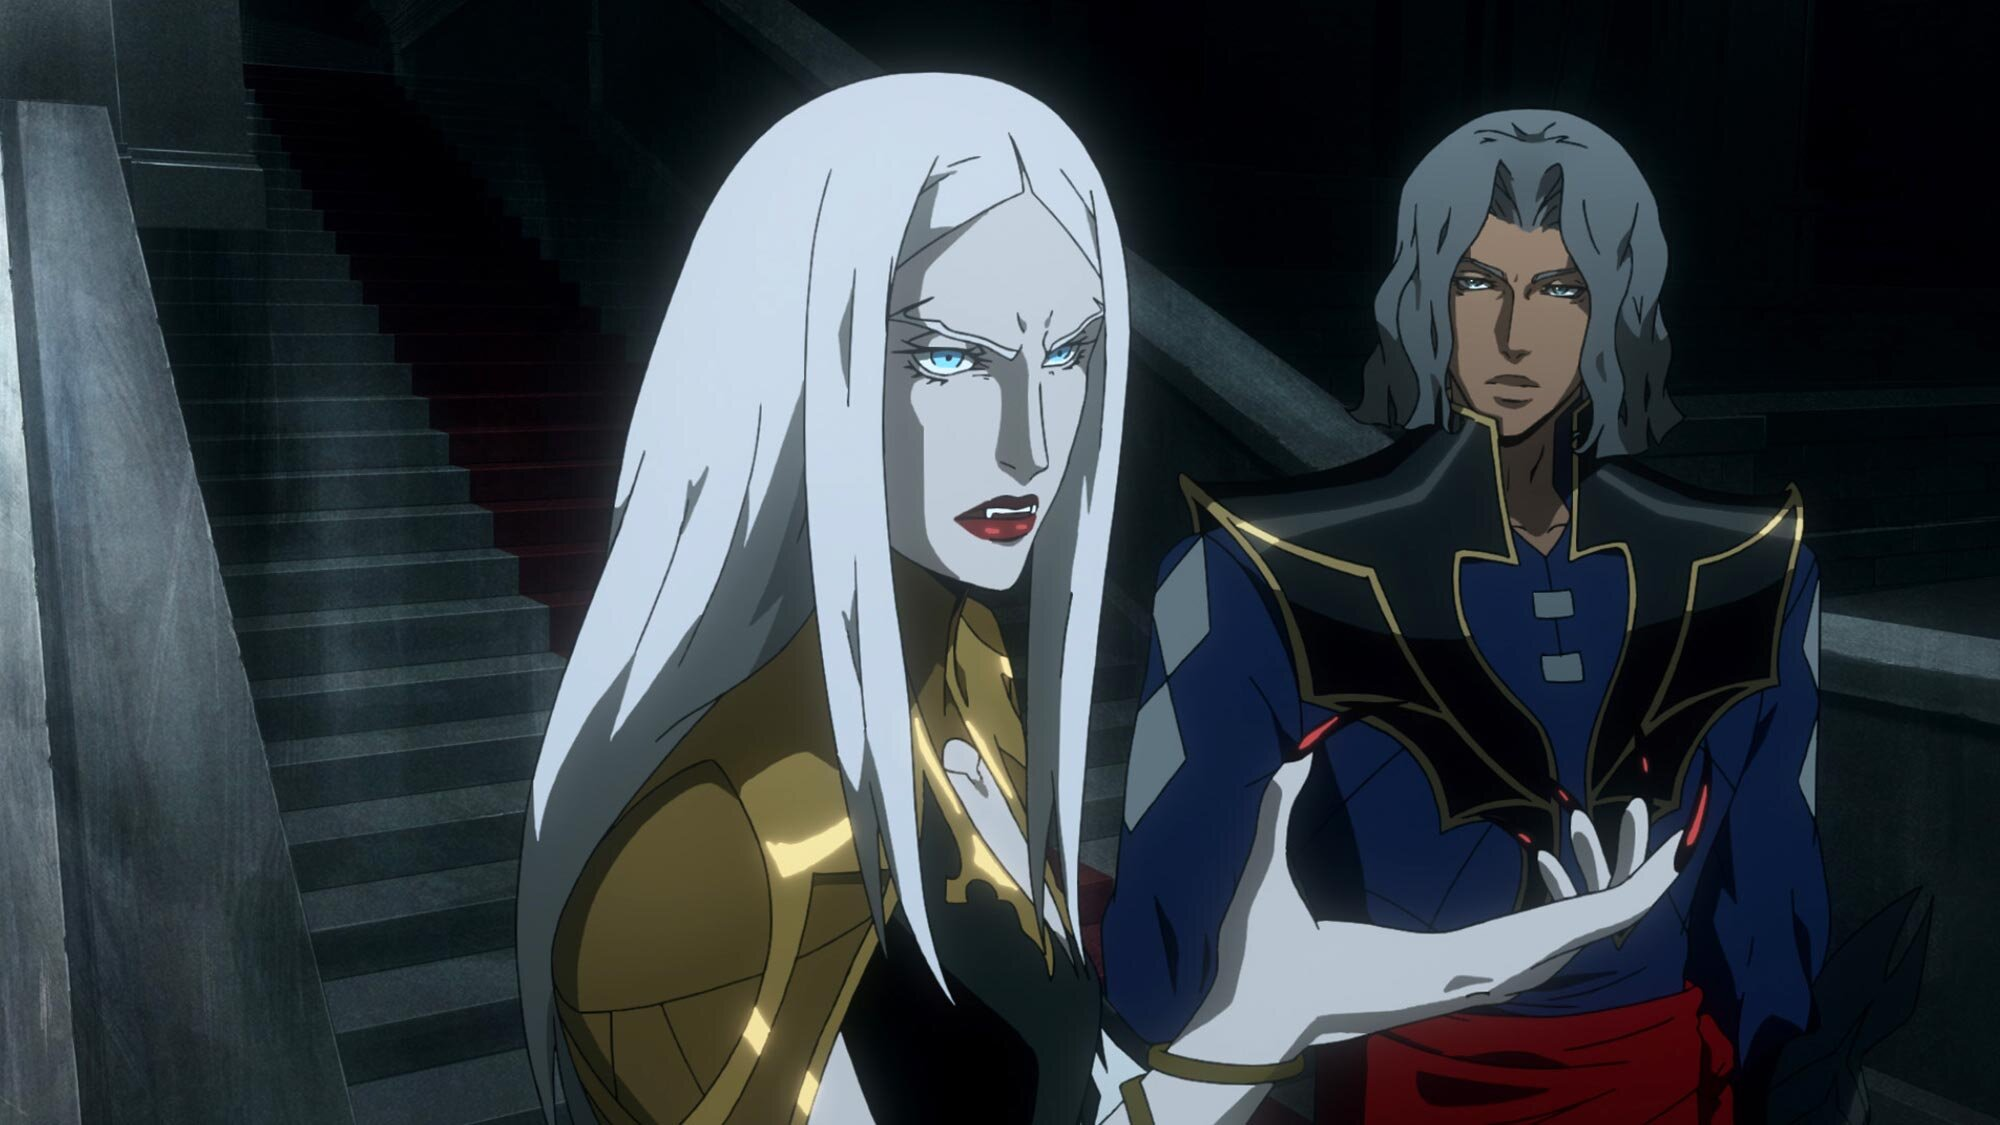 When and What Can We Expect From Castlevania Season 4